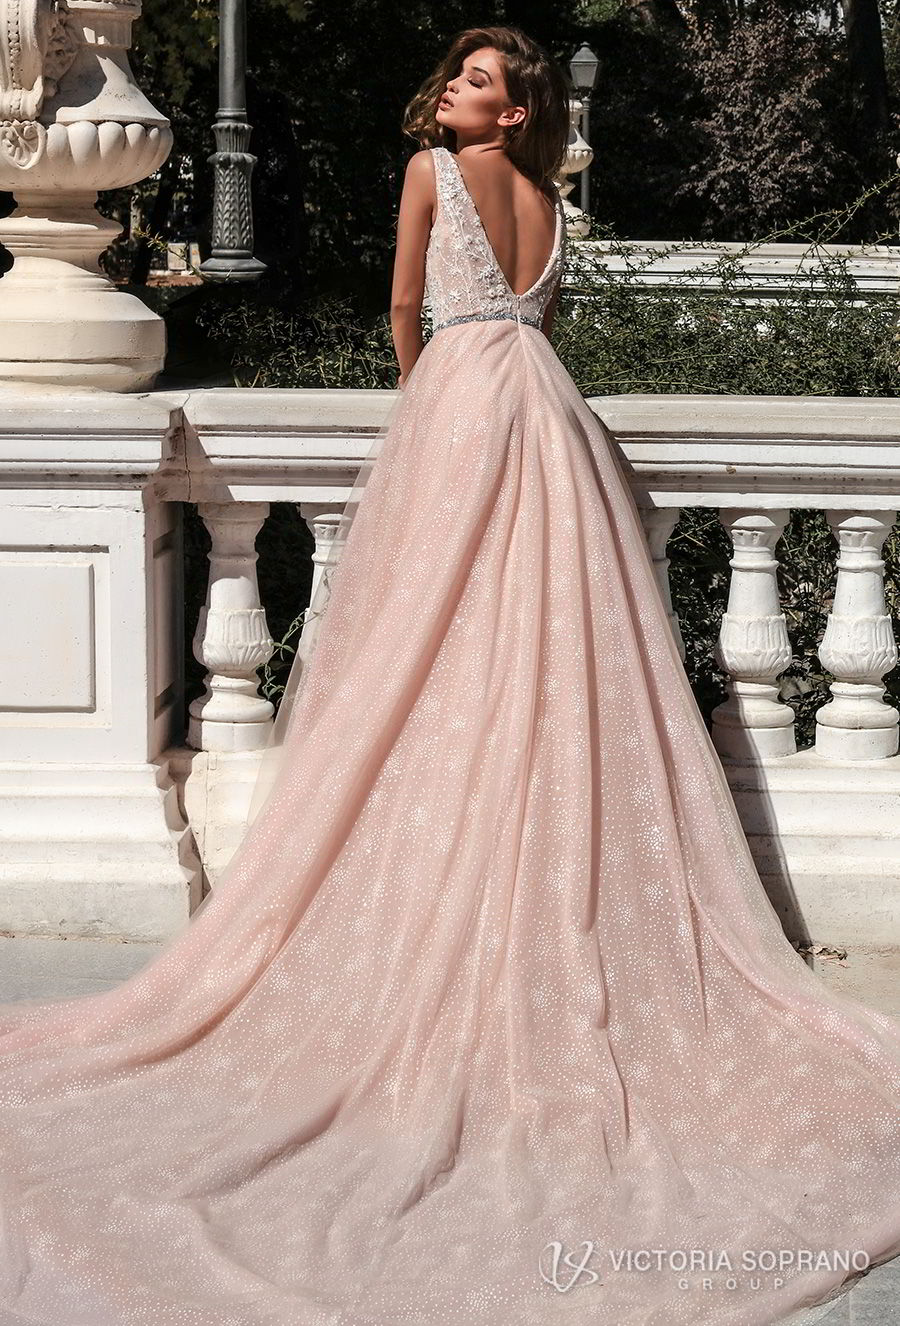 victoria soprano 2018 bridal sleeveless deep v neck heavily embellished bodice romantic pink a line wedding dress open v back chapel train (selesta) bv